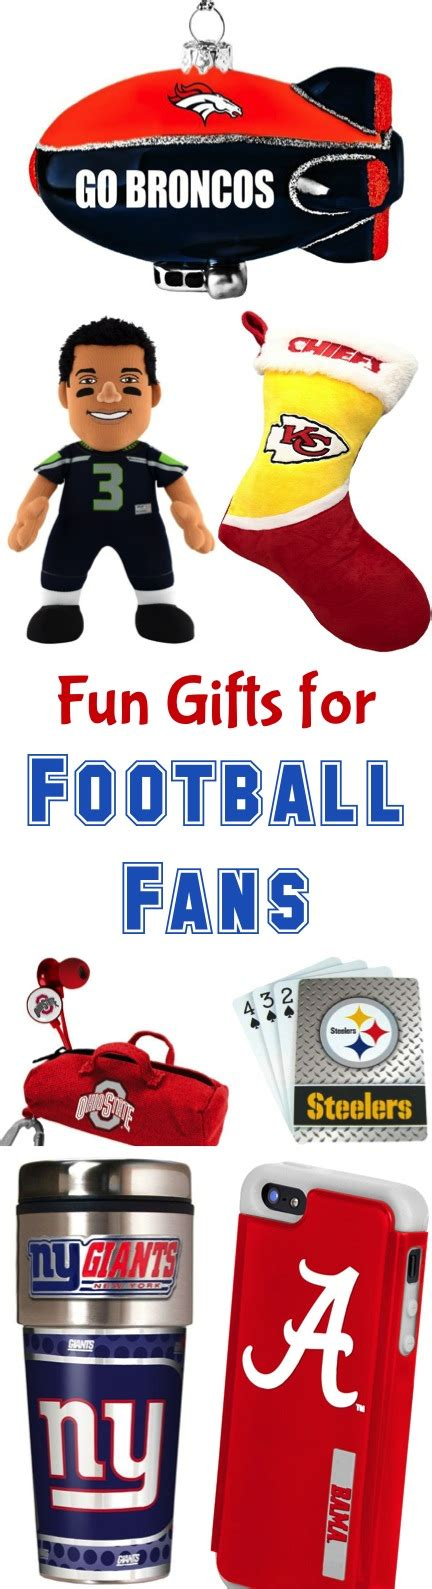 gifts for soccer fans 37 silly sock ideas ultimate christmas stocking stuffer